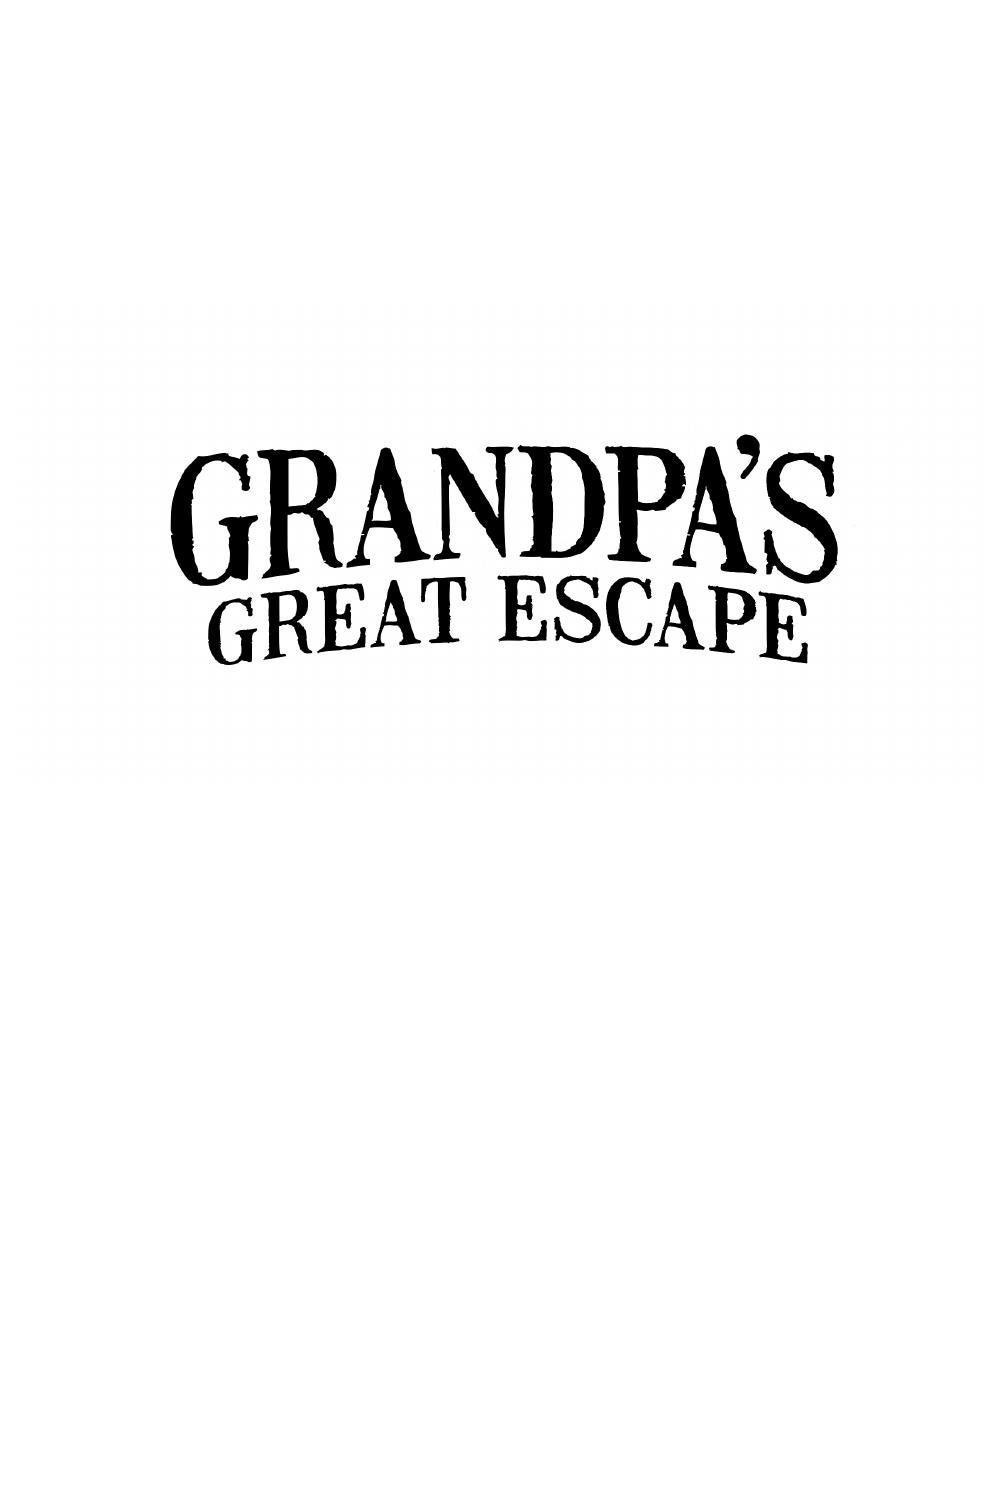 Grandpas great escape by david walliams illustrated by tony ross grandpas great escape by david walliams illustrated by tony ross by harpercollins childrens books issuu fandeluxe Image collections